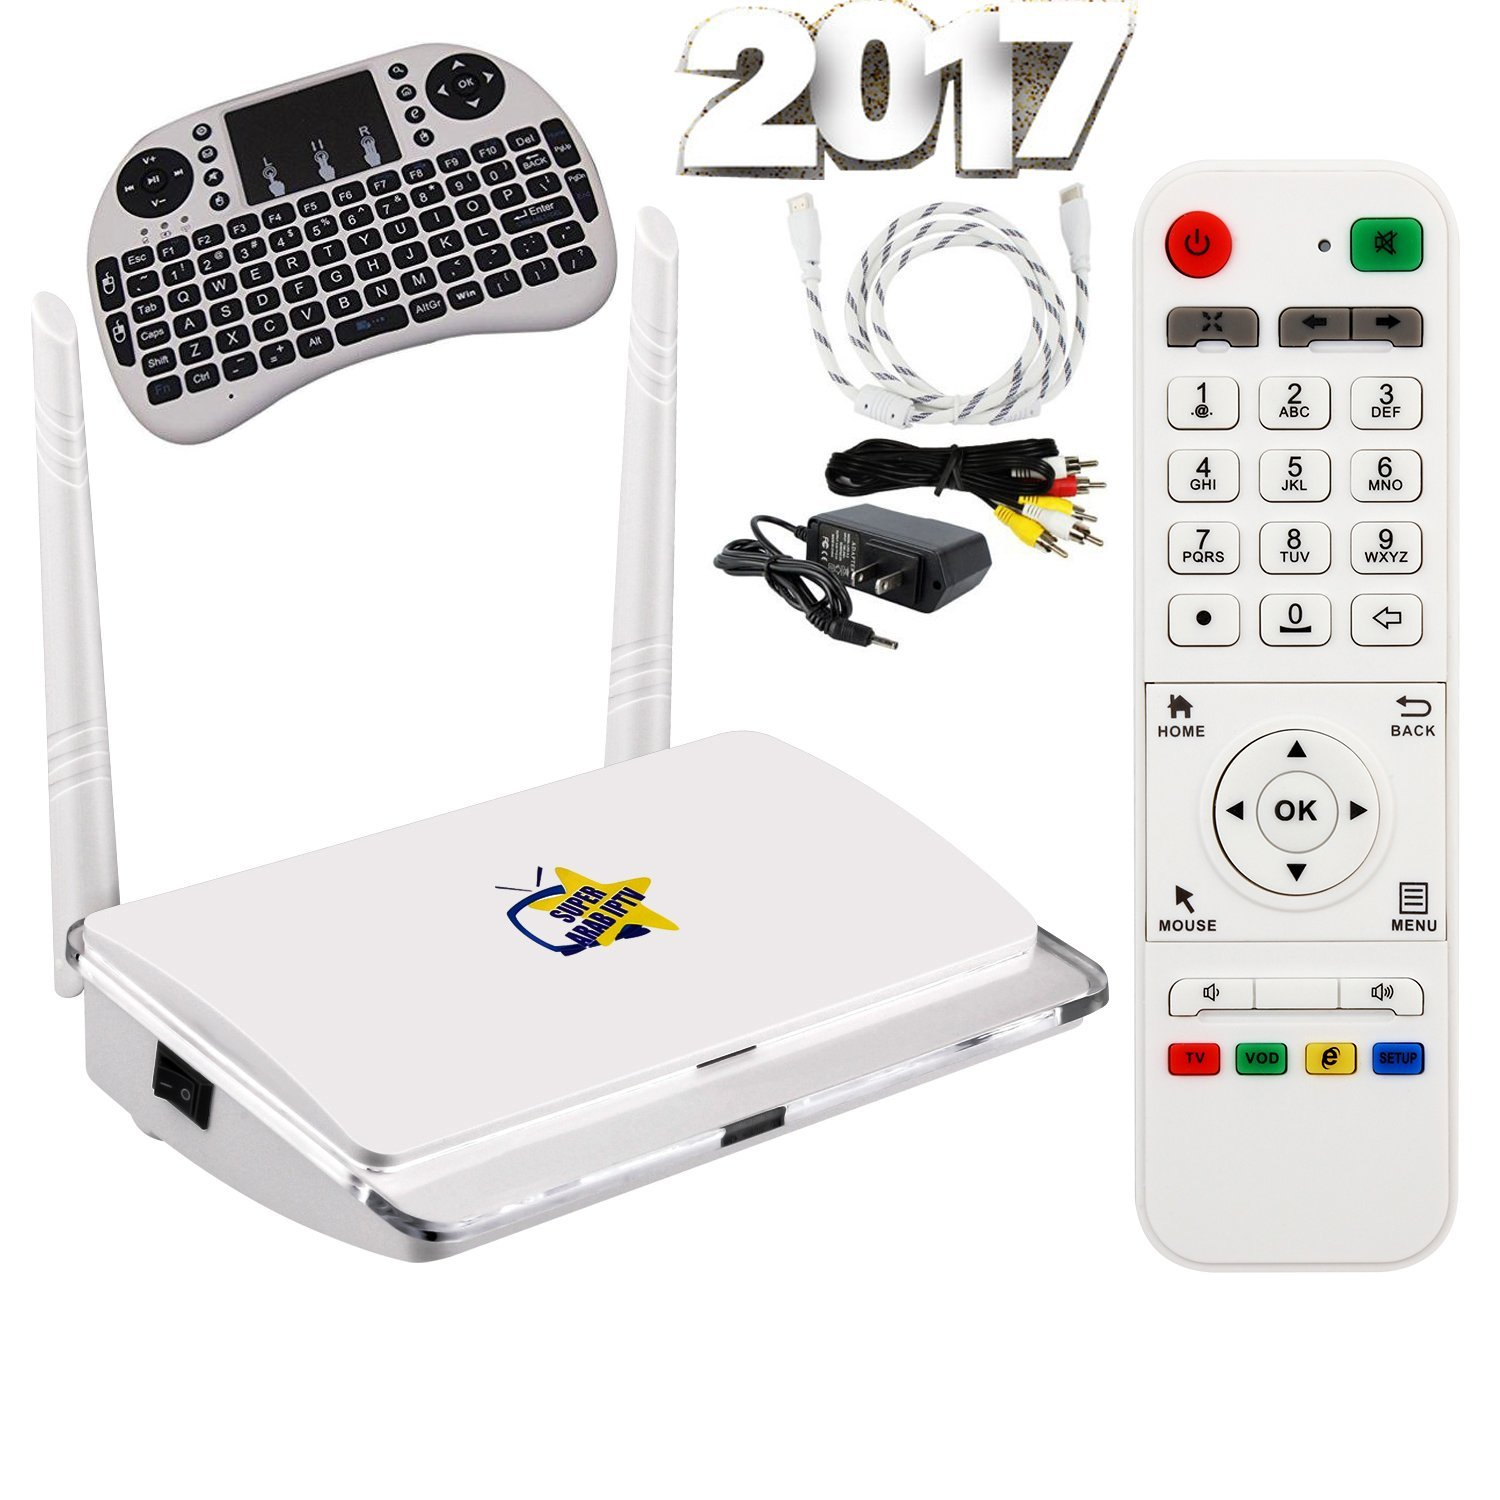 SUPER ARAB IPTV 2017 + 1500 channels and movies with 2 years complimentary service + Mini Wireless Keyboard